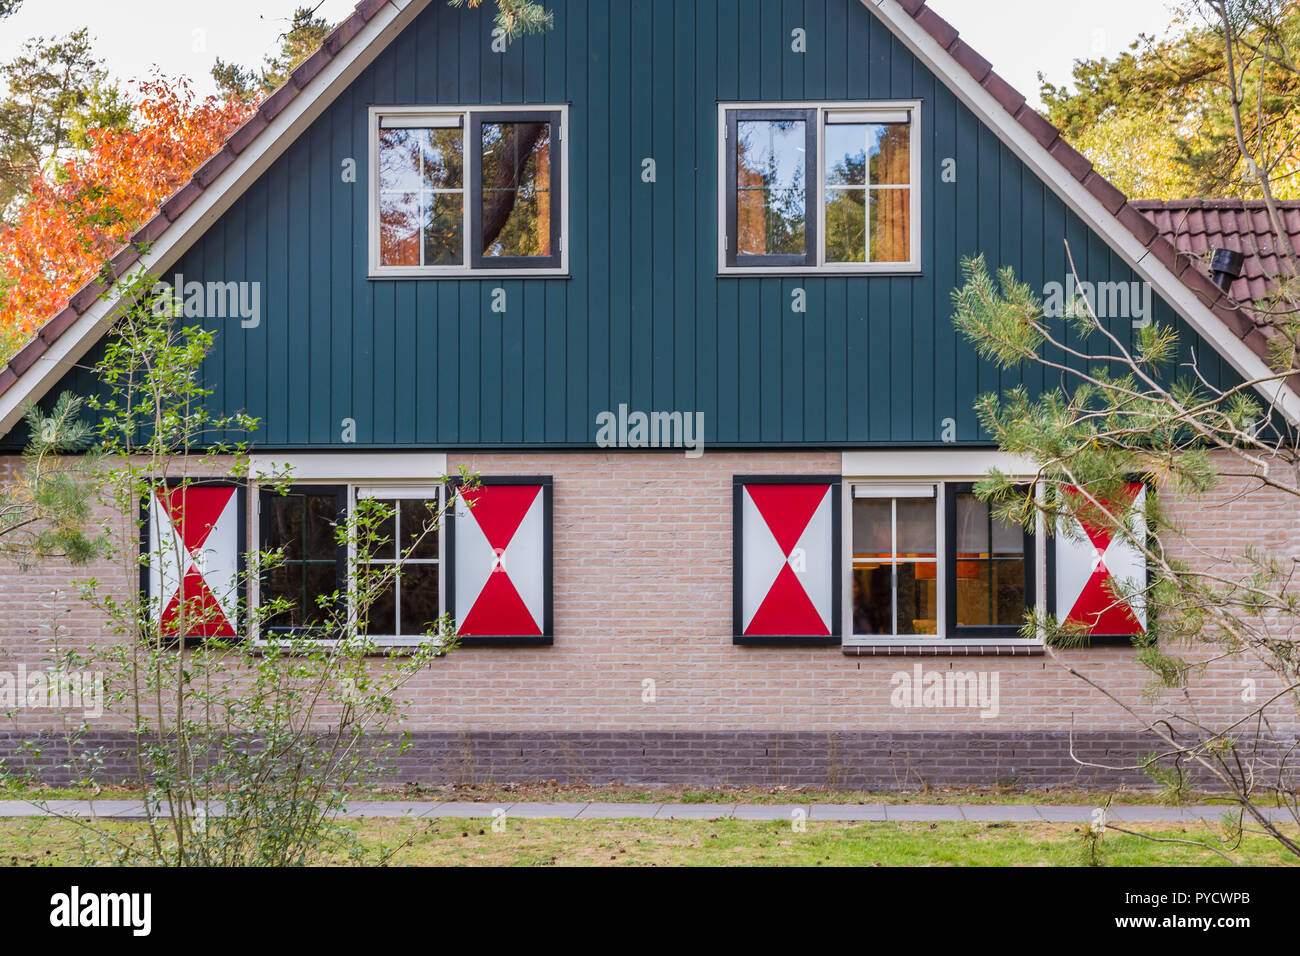 Cozy little holiday home in the Netherlands - Stock Image